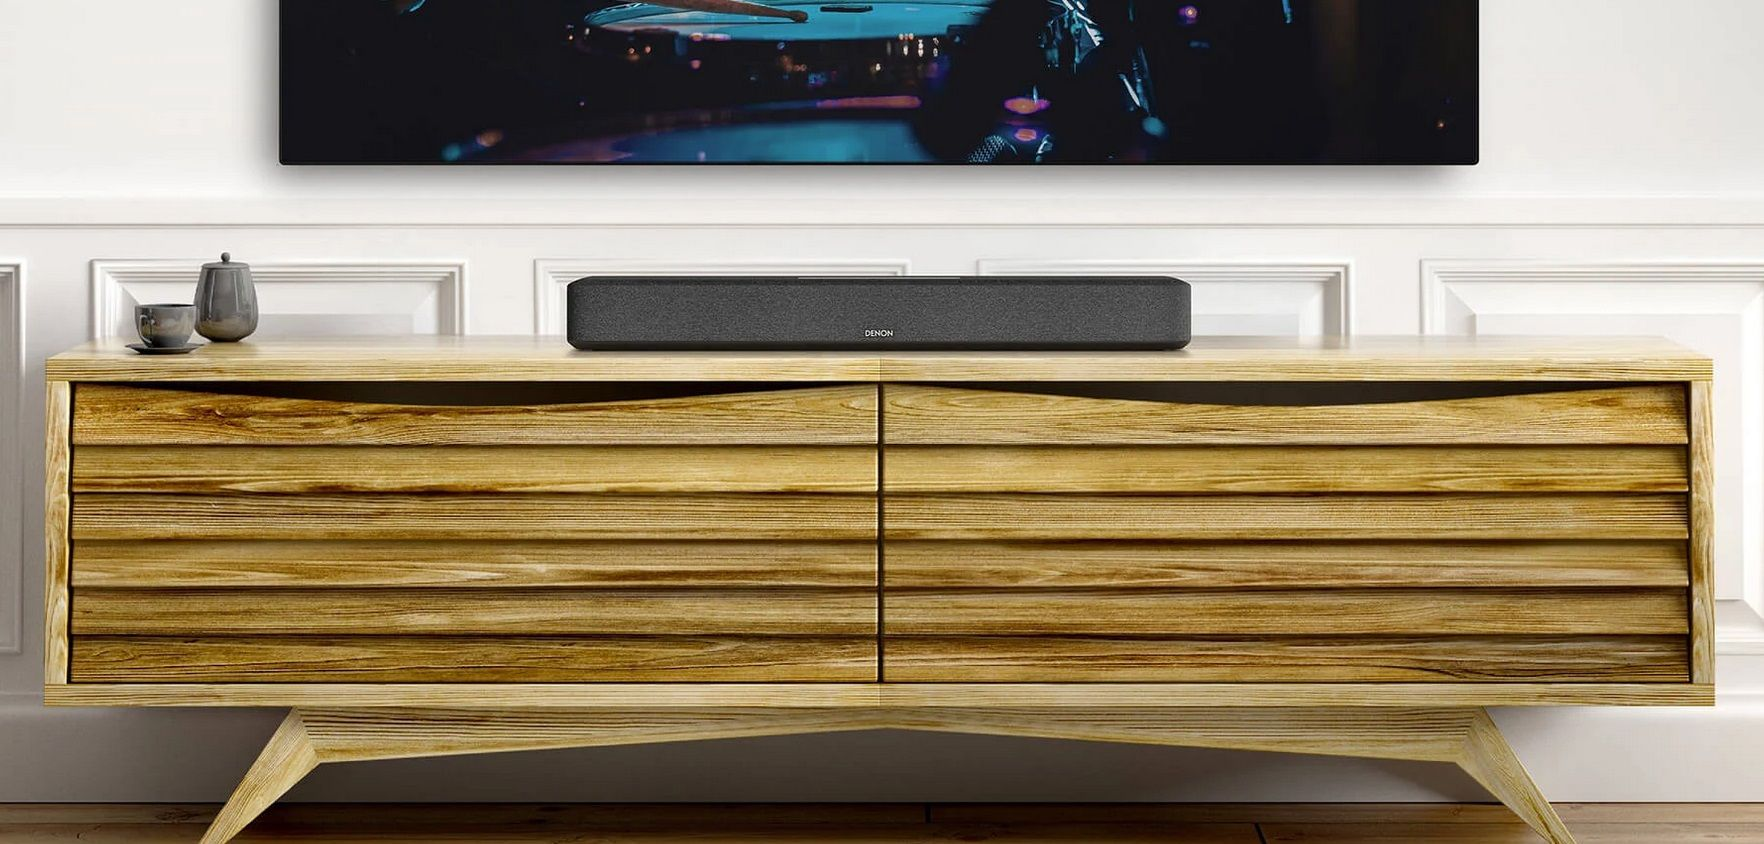 Denon Home 550 soundbar